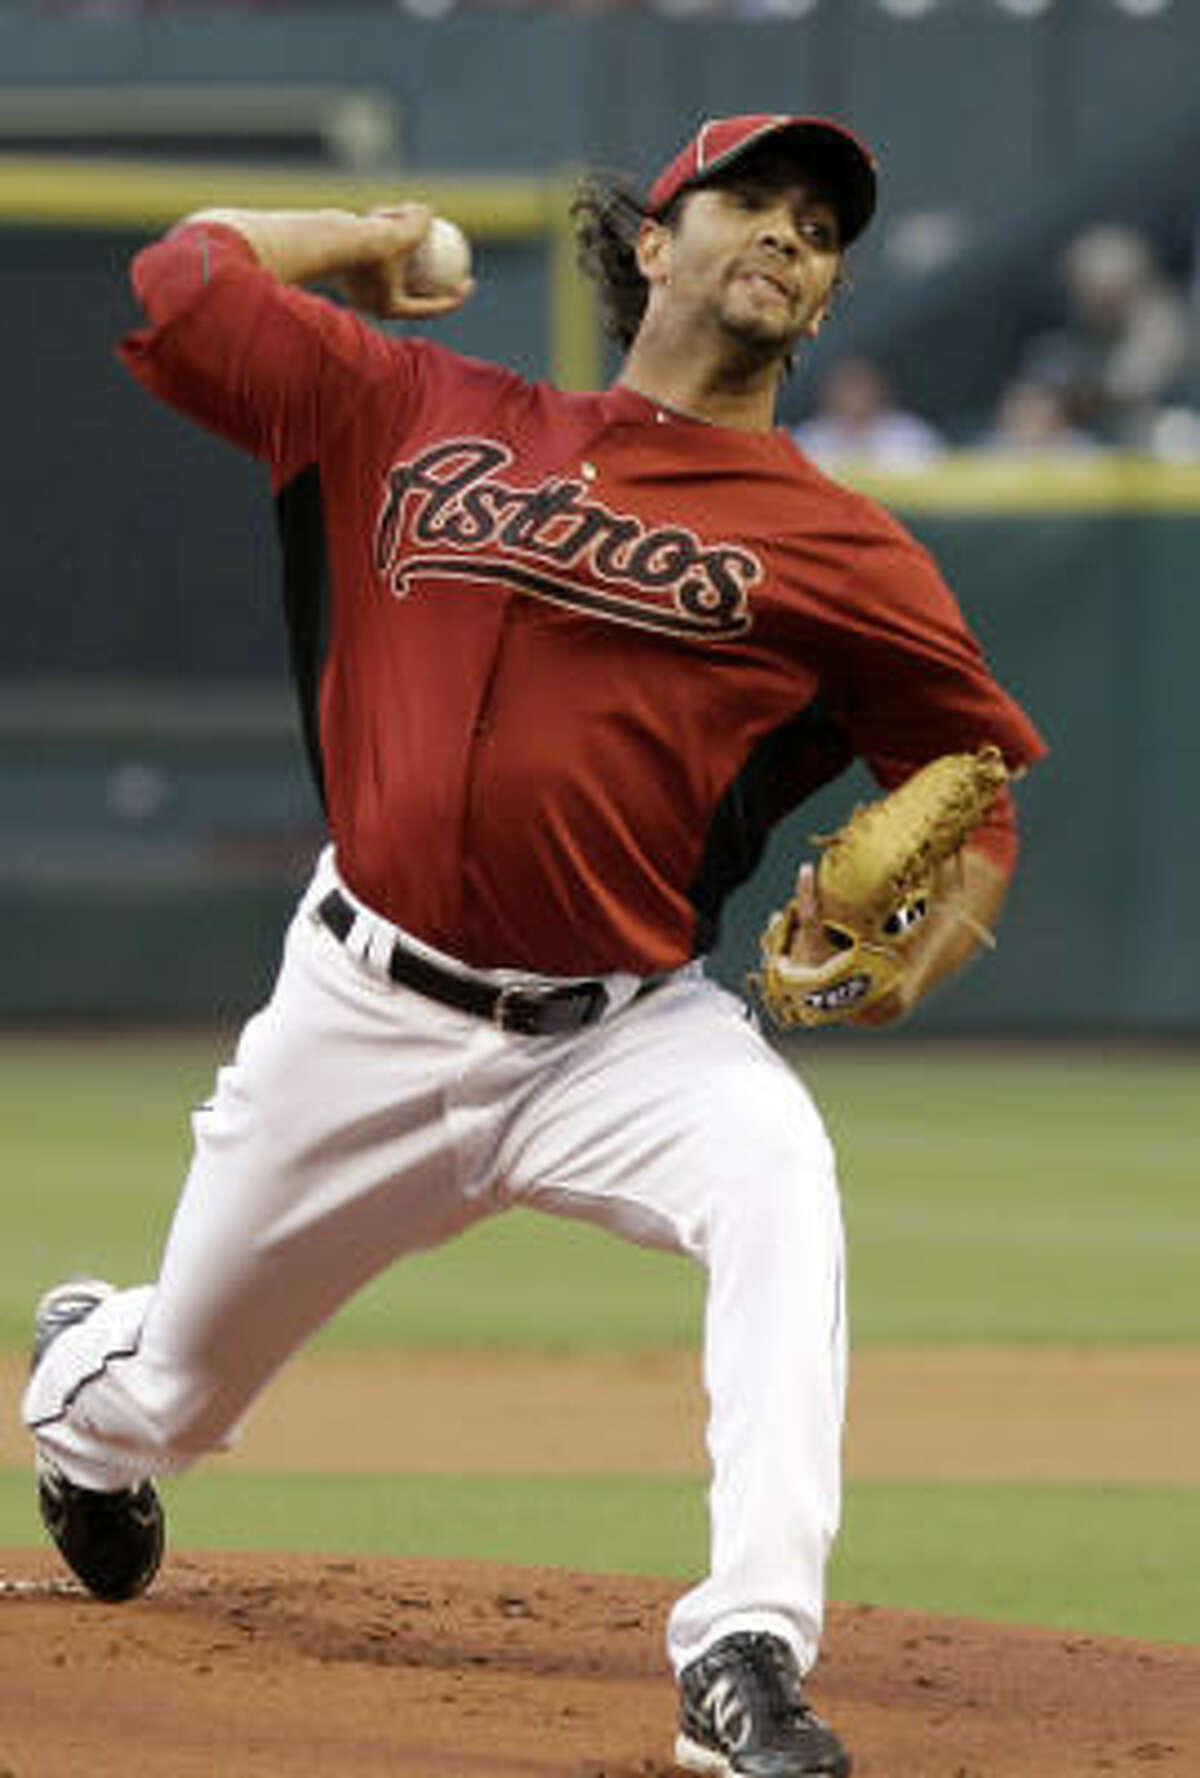 Astros pitcher Nelson Figueroa delivers a pitch during the first inning.